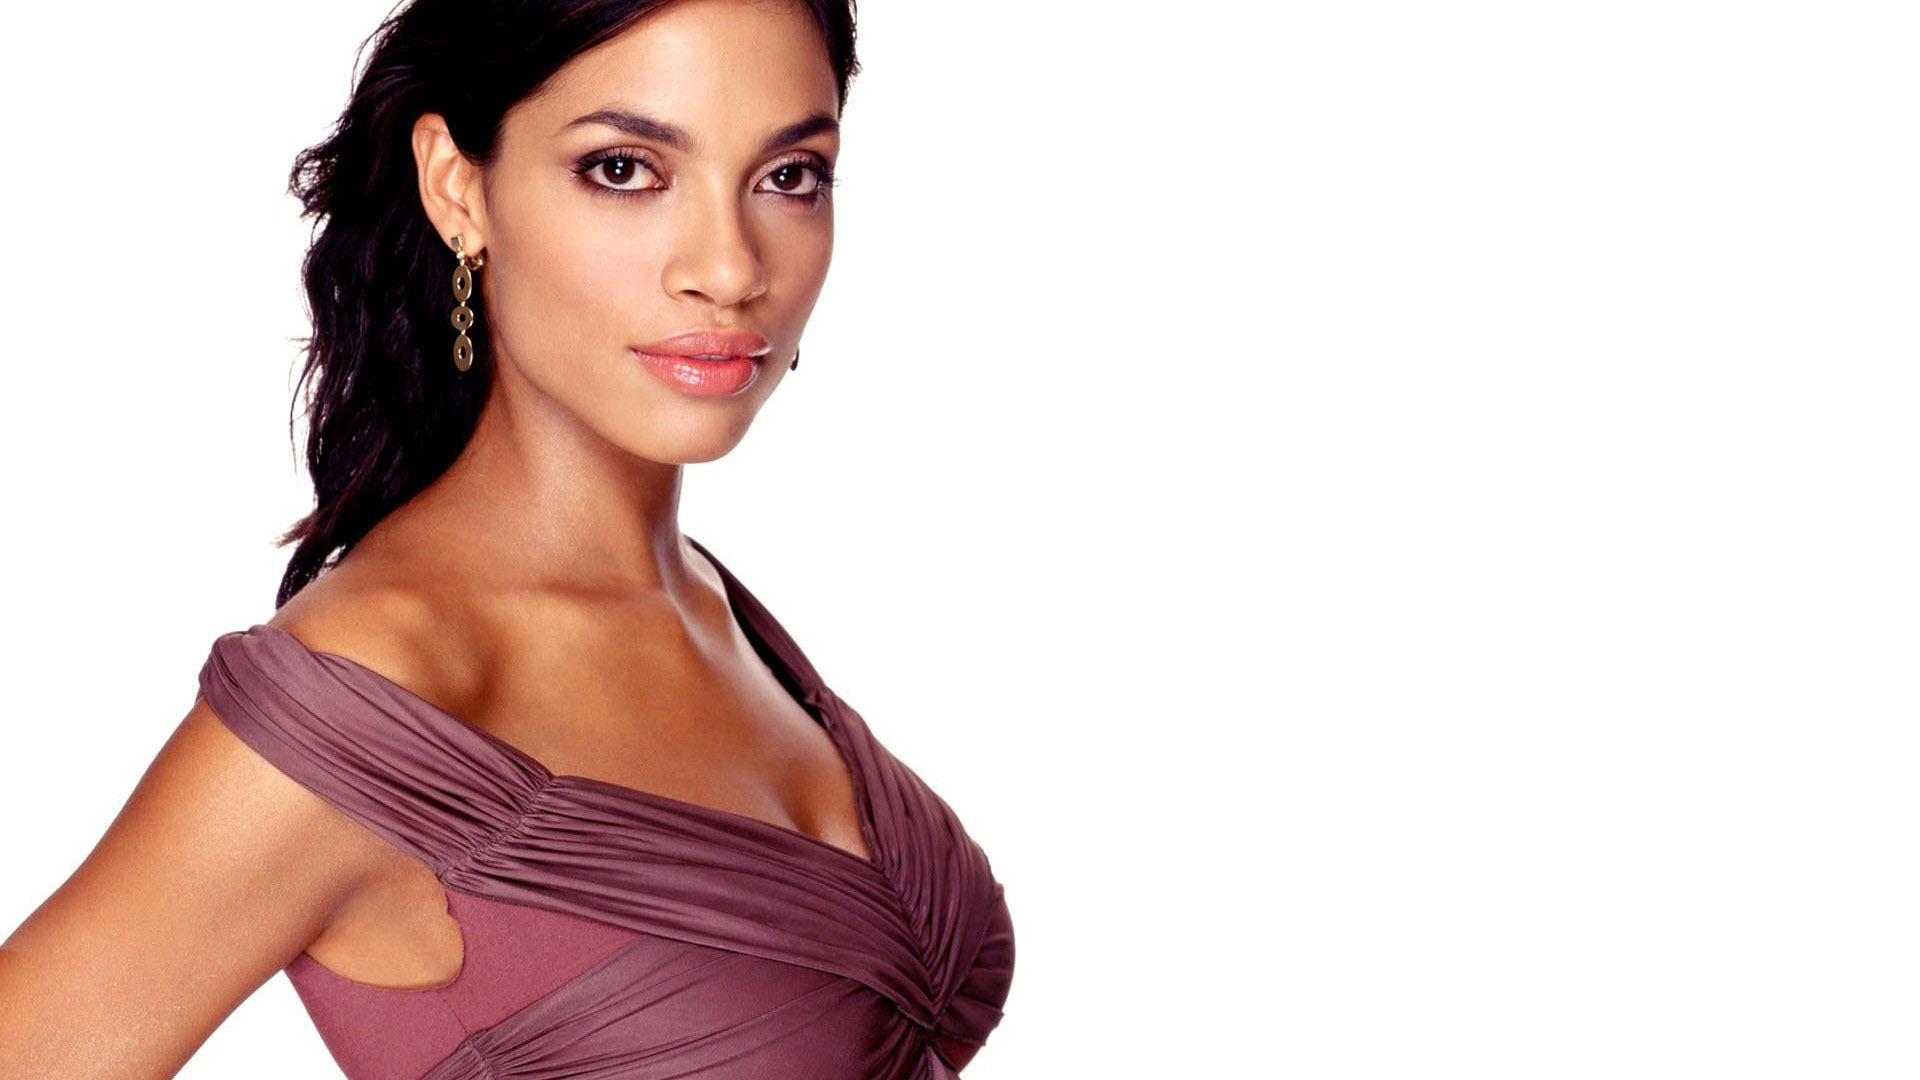 Rosario Dawson Wallpapers Images Photos Pictures Backgrounds 1920x1080